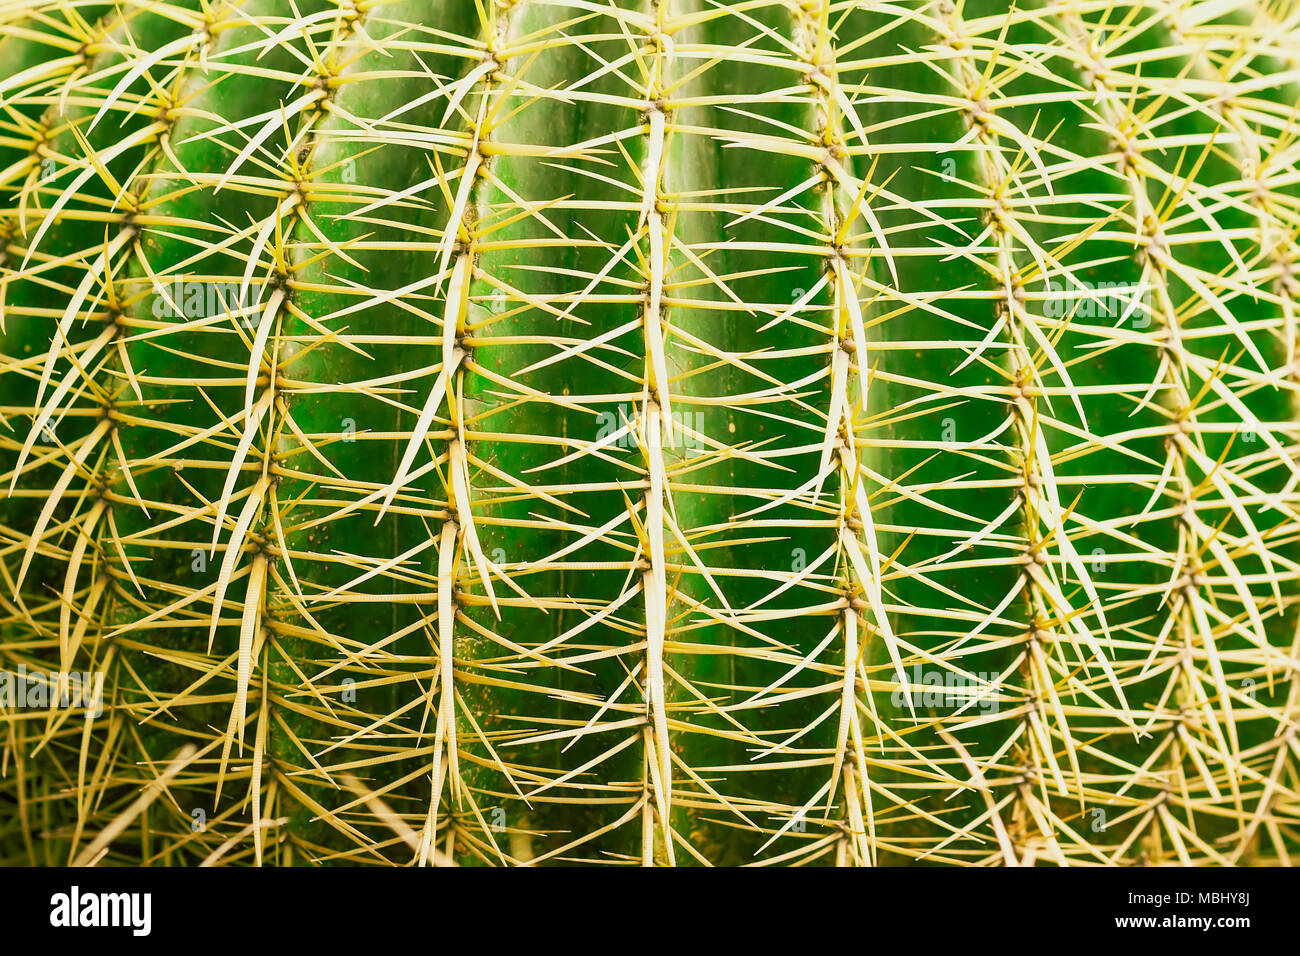 Tropical natural green cactus texture. Abstract natural pattern texture, exotic spiny background - Stock Image